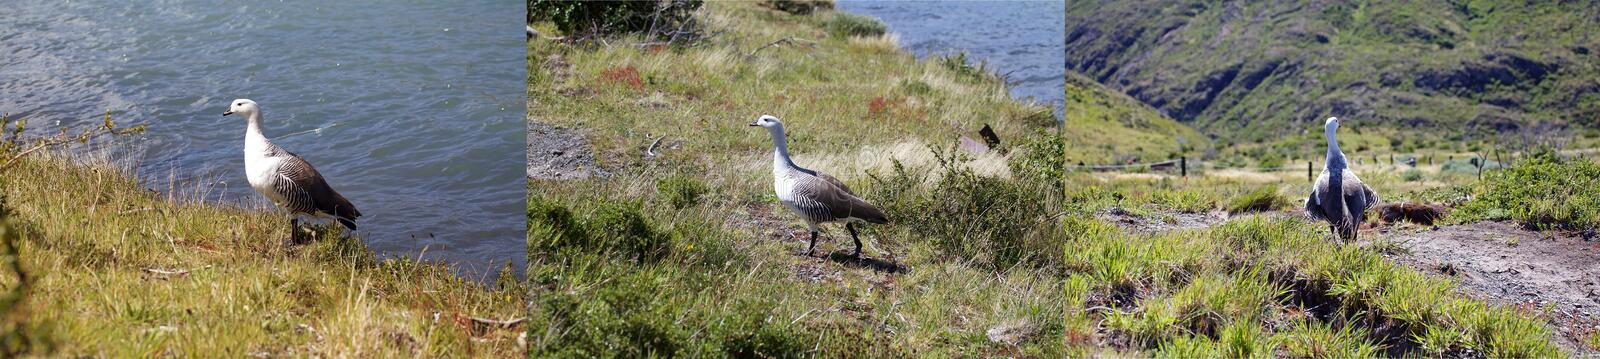 Magellan goose Chloephaga picta at the Lake Pehoe In Torres del Paine National Park, southern Chile stock images